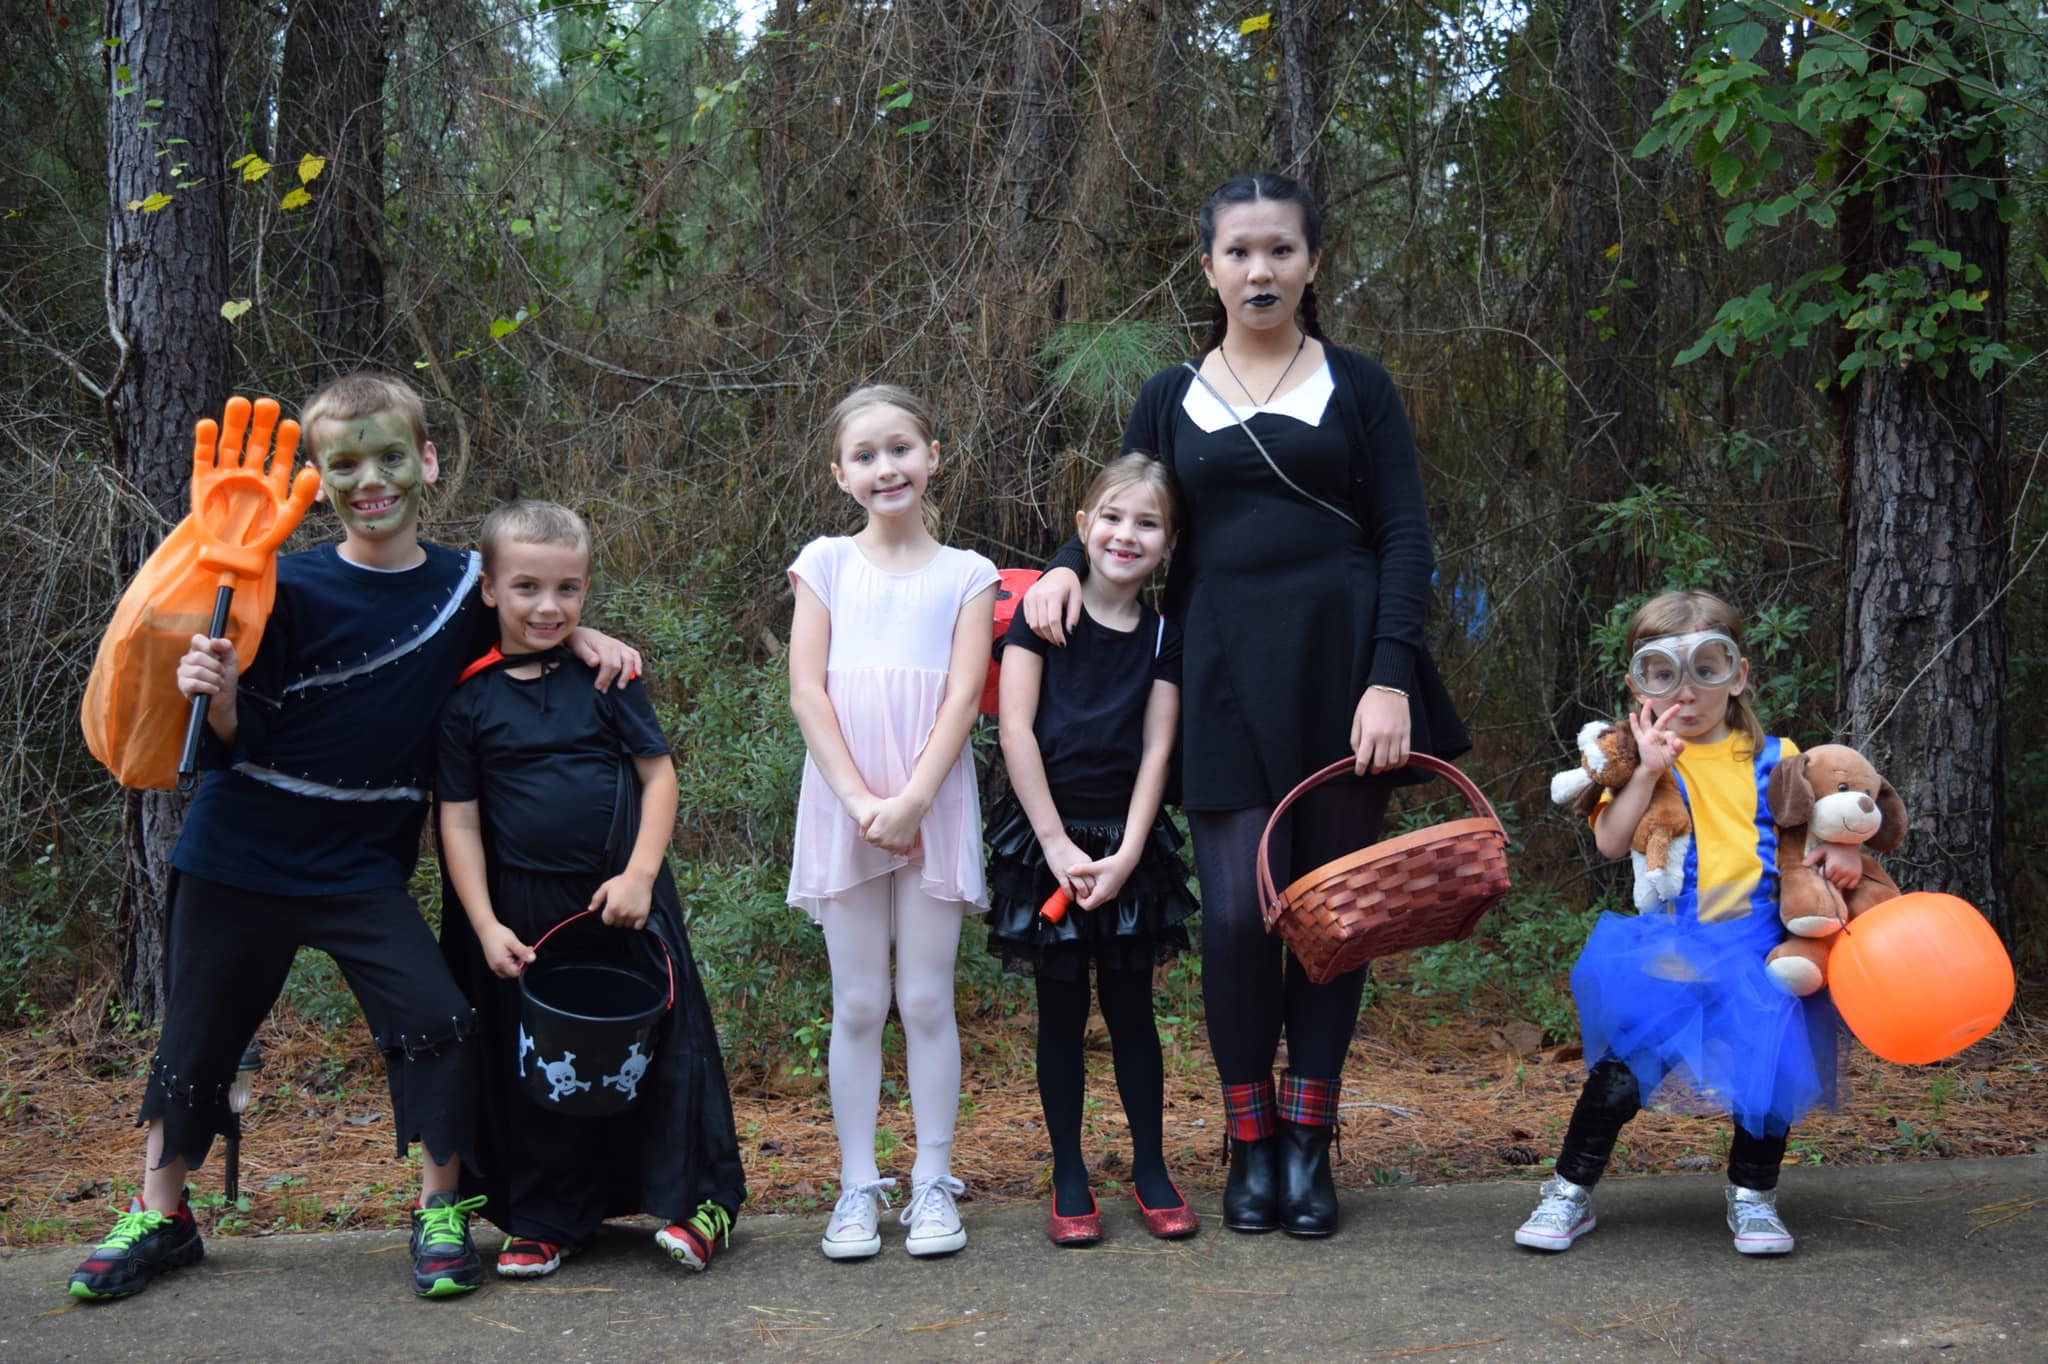 young kids and exchange student in Halloween costumes